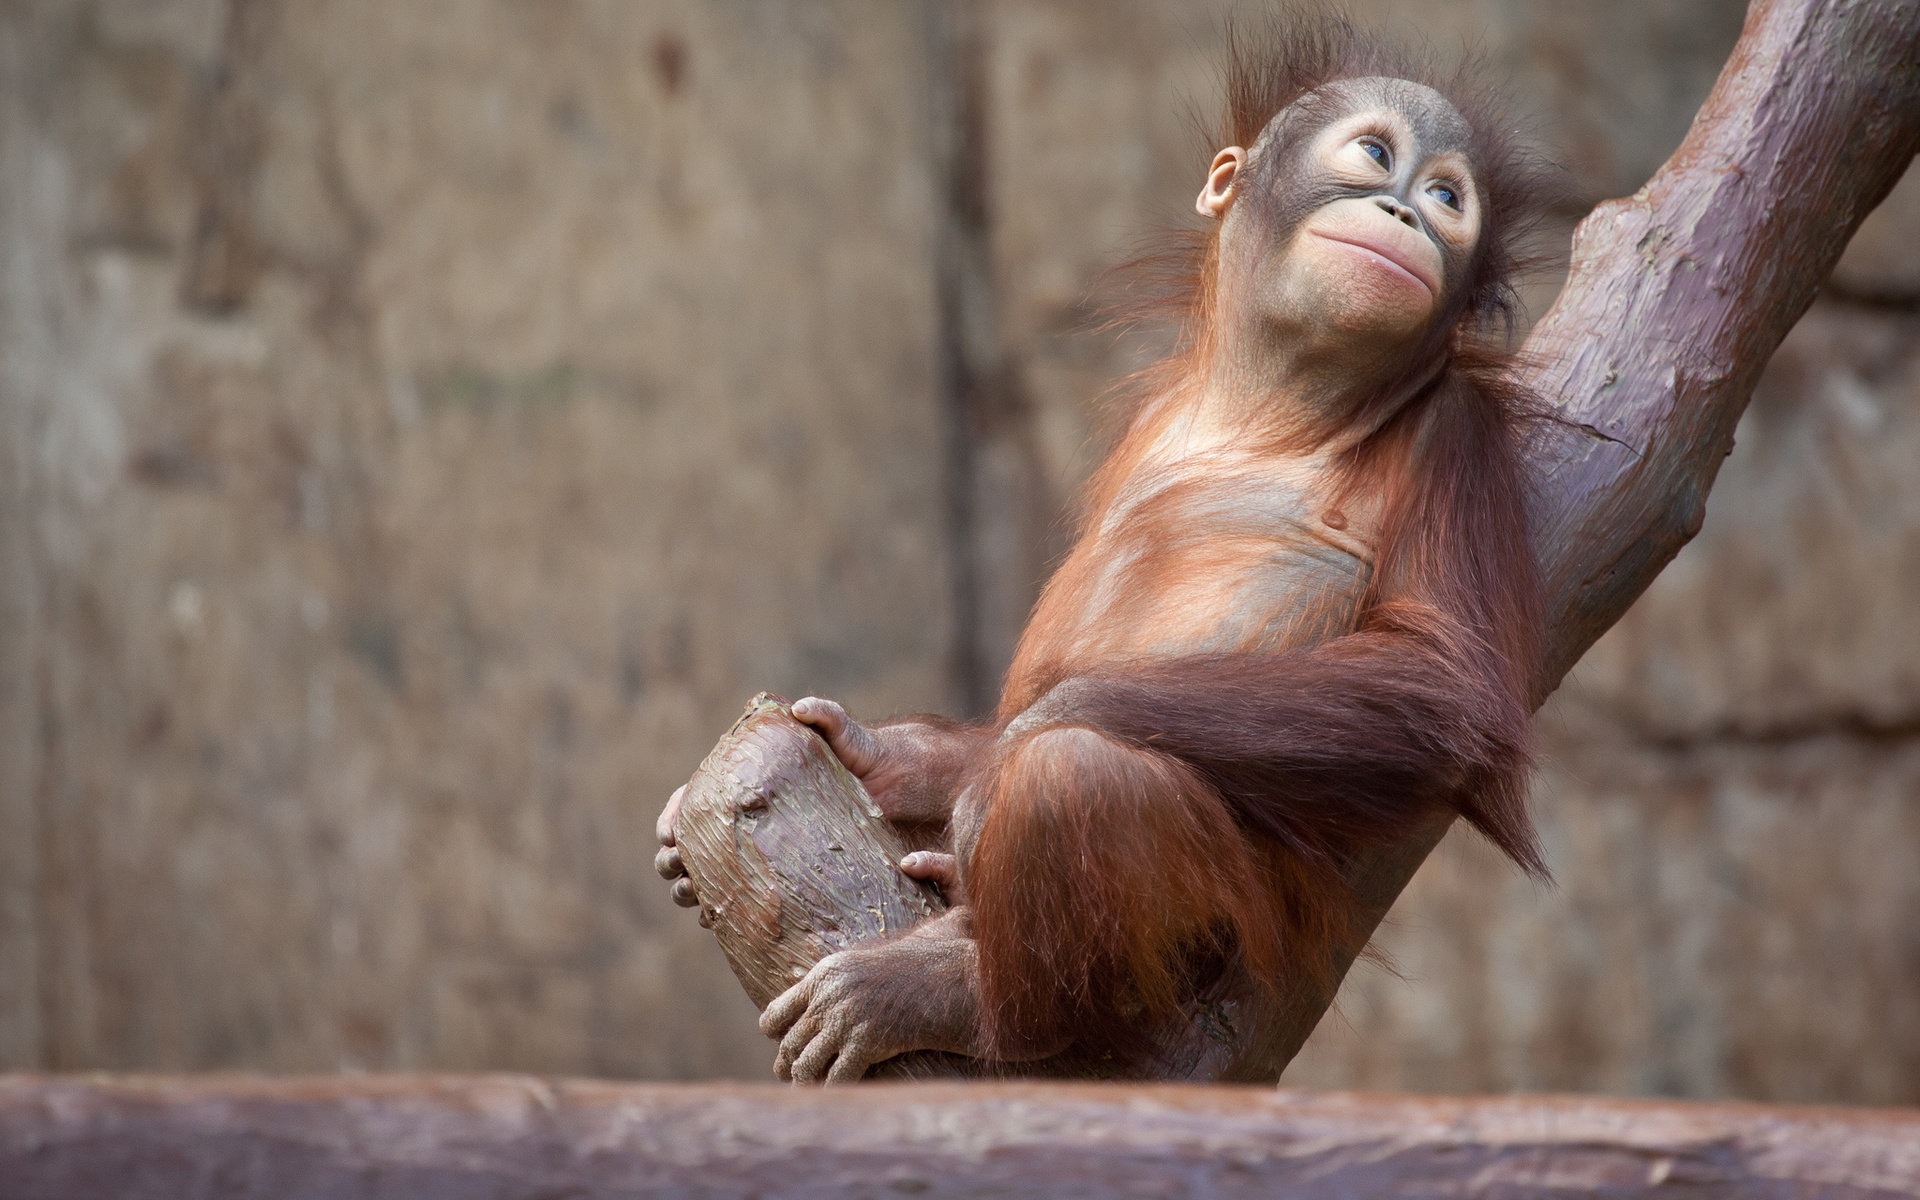 Awesome Orangutan free wallpaper ID:70069 for hd 1920x1200 desktop